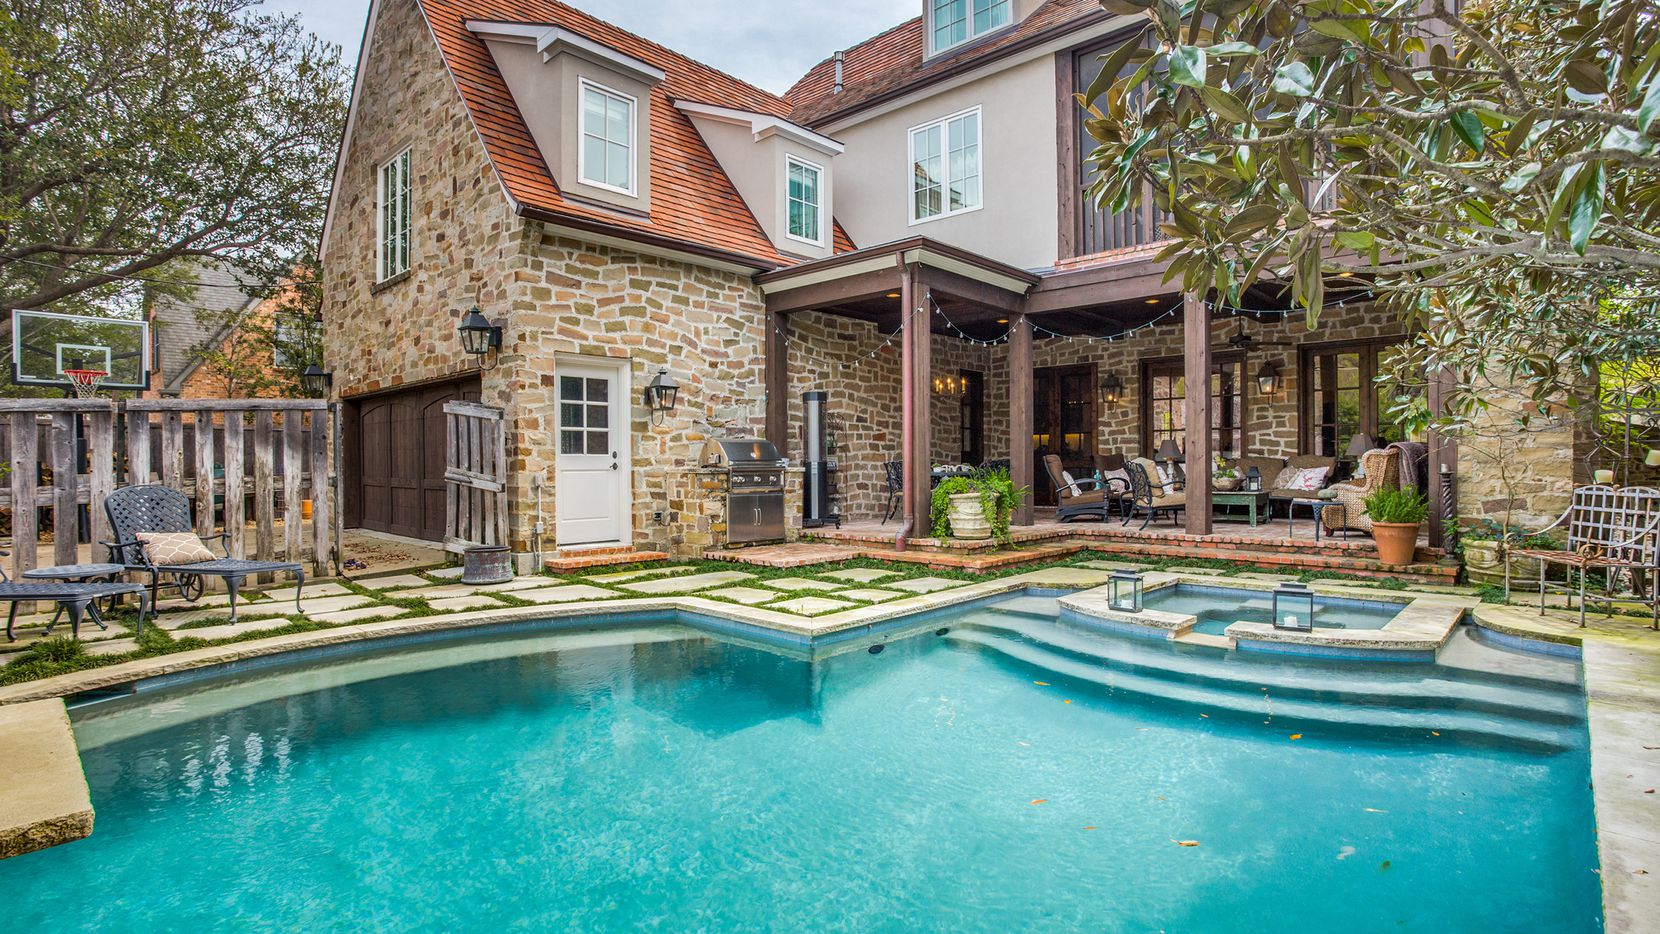 Get ready for summer gatherings around a backyard pool.